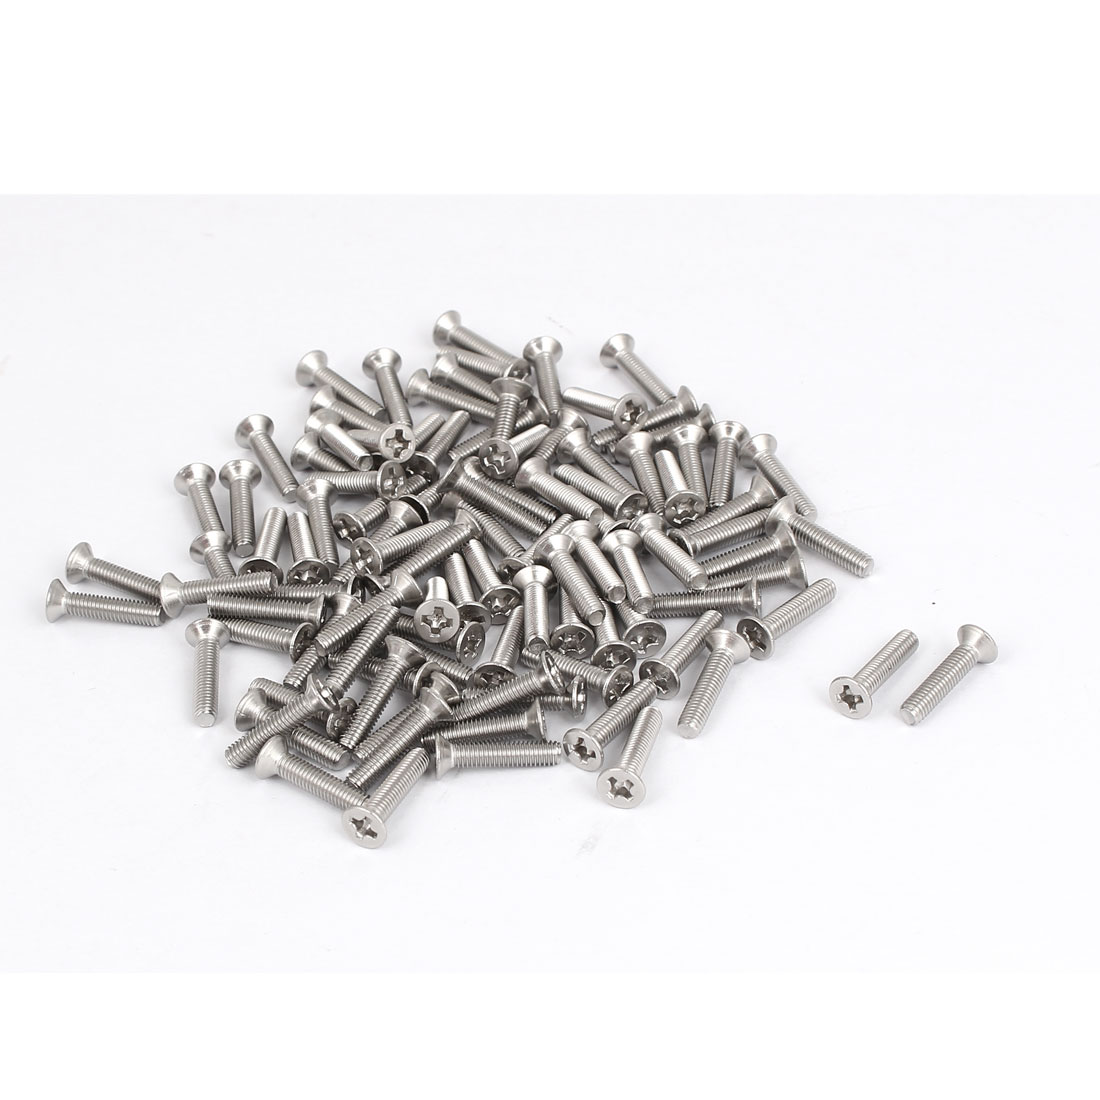 M3x14mm Stainless Steel Phillips Flat Countersunk Head Screws 100pcs